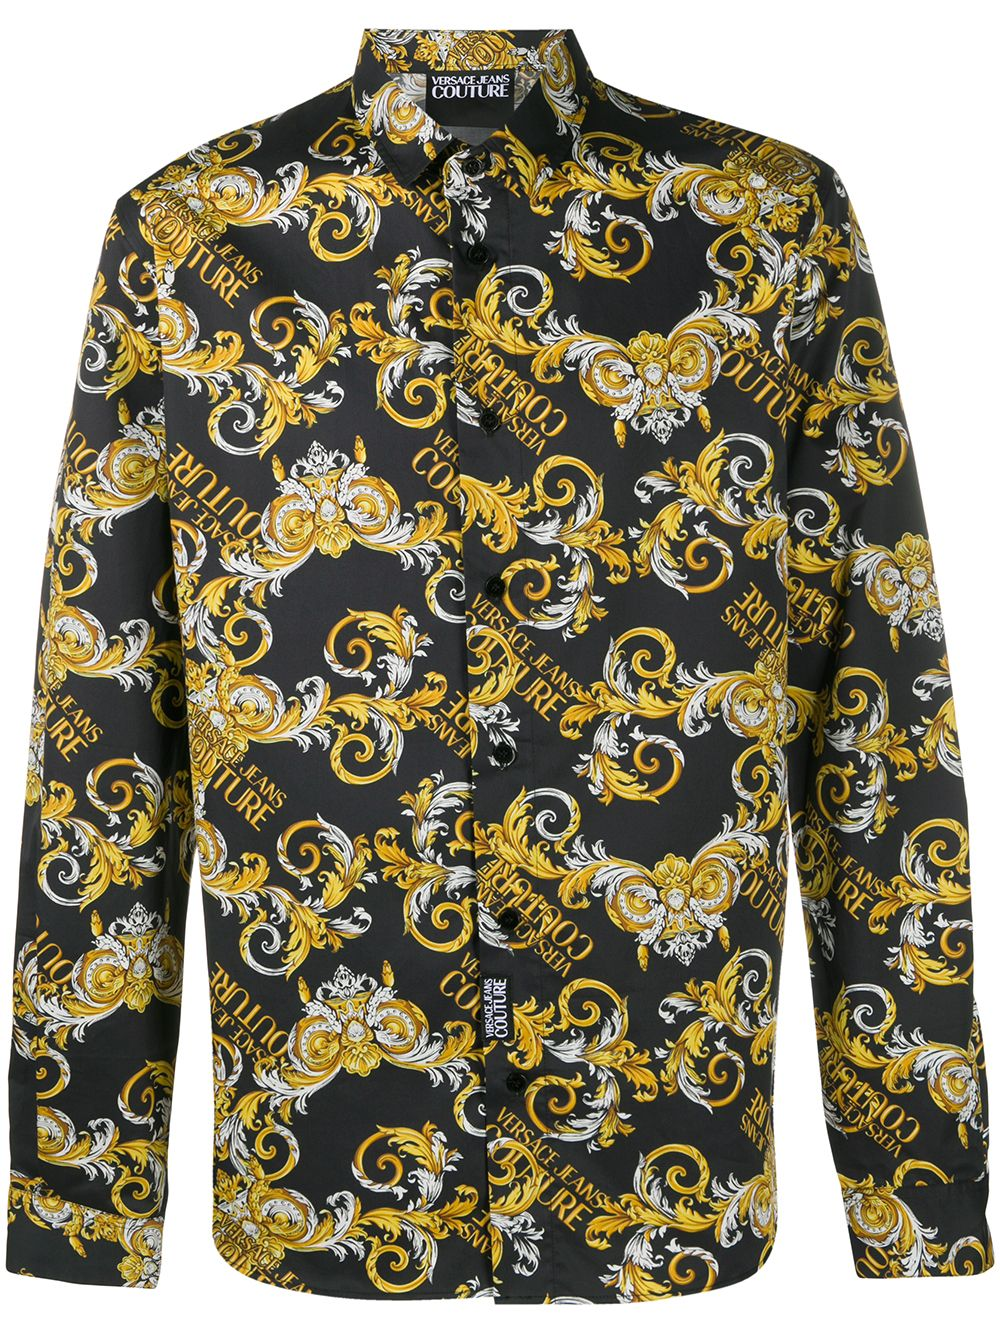 VERSACE JEANS COUTURE      B1.GZA6S0.S0832899